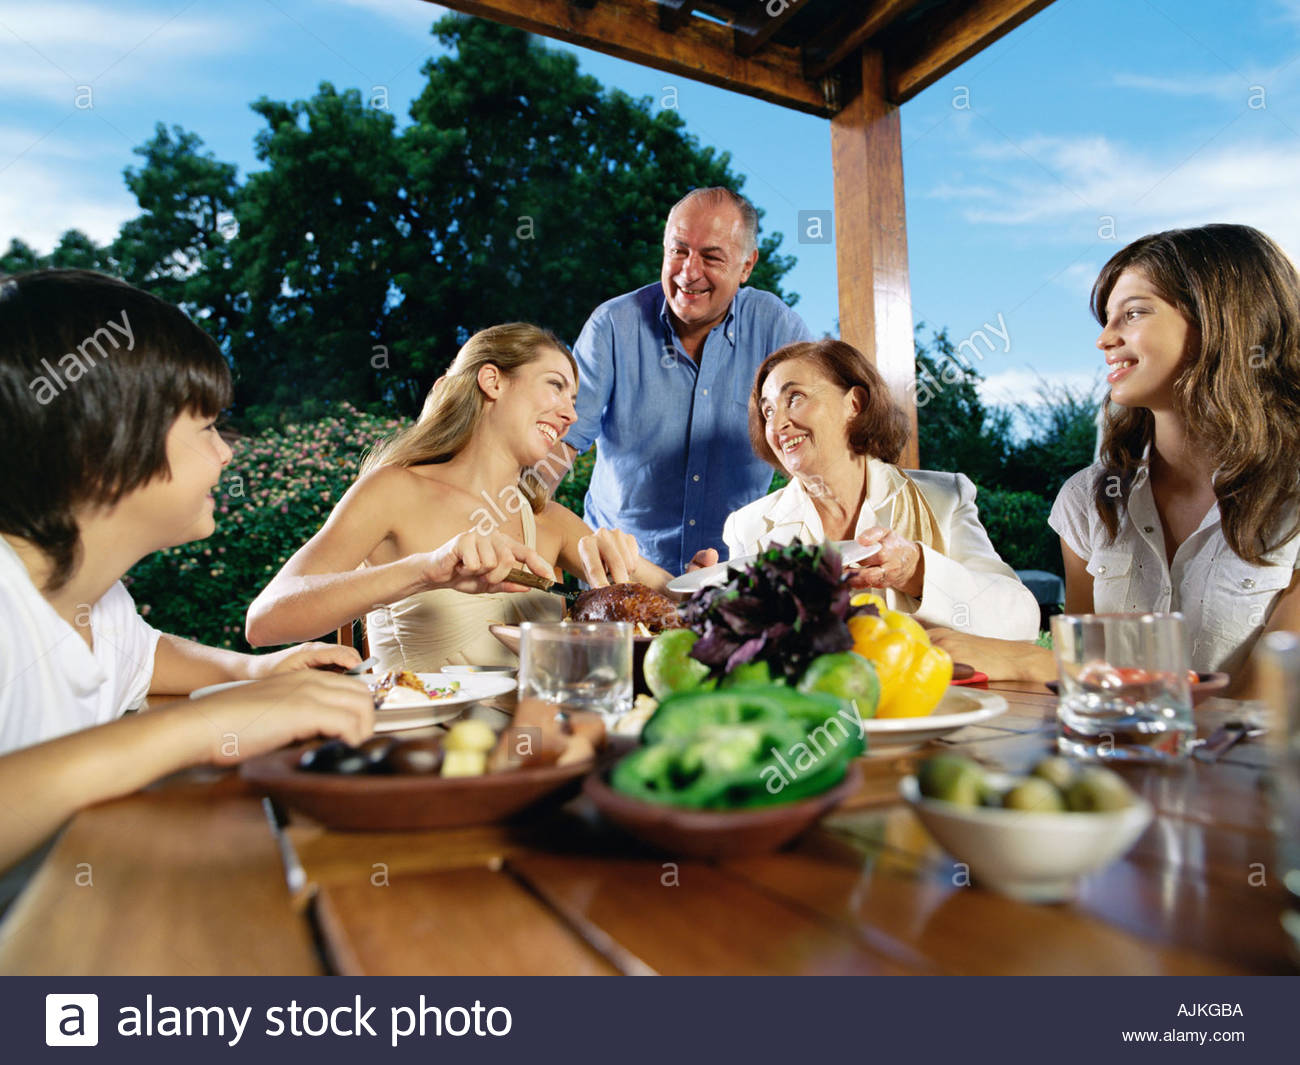 Mother carving meat for family - Stock Image